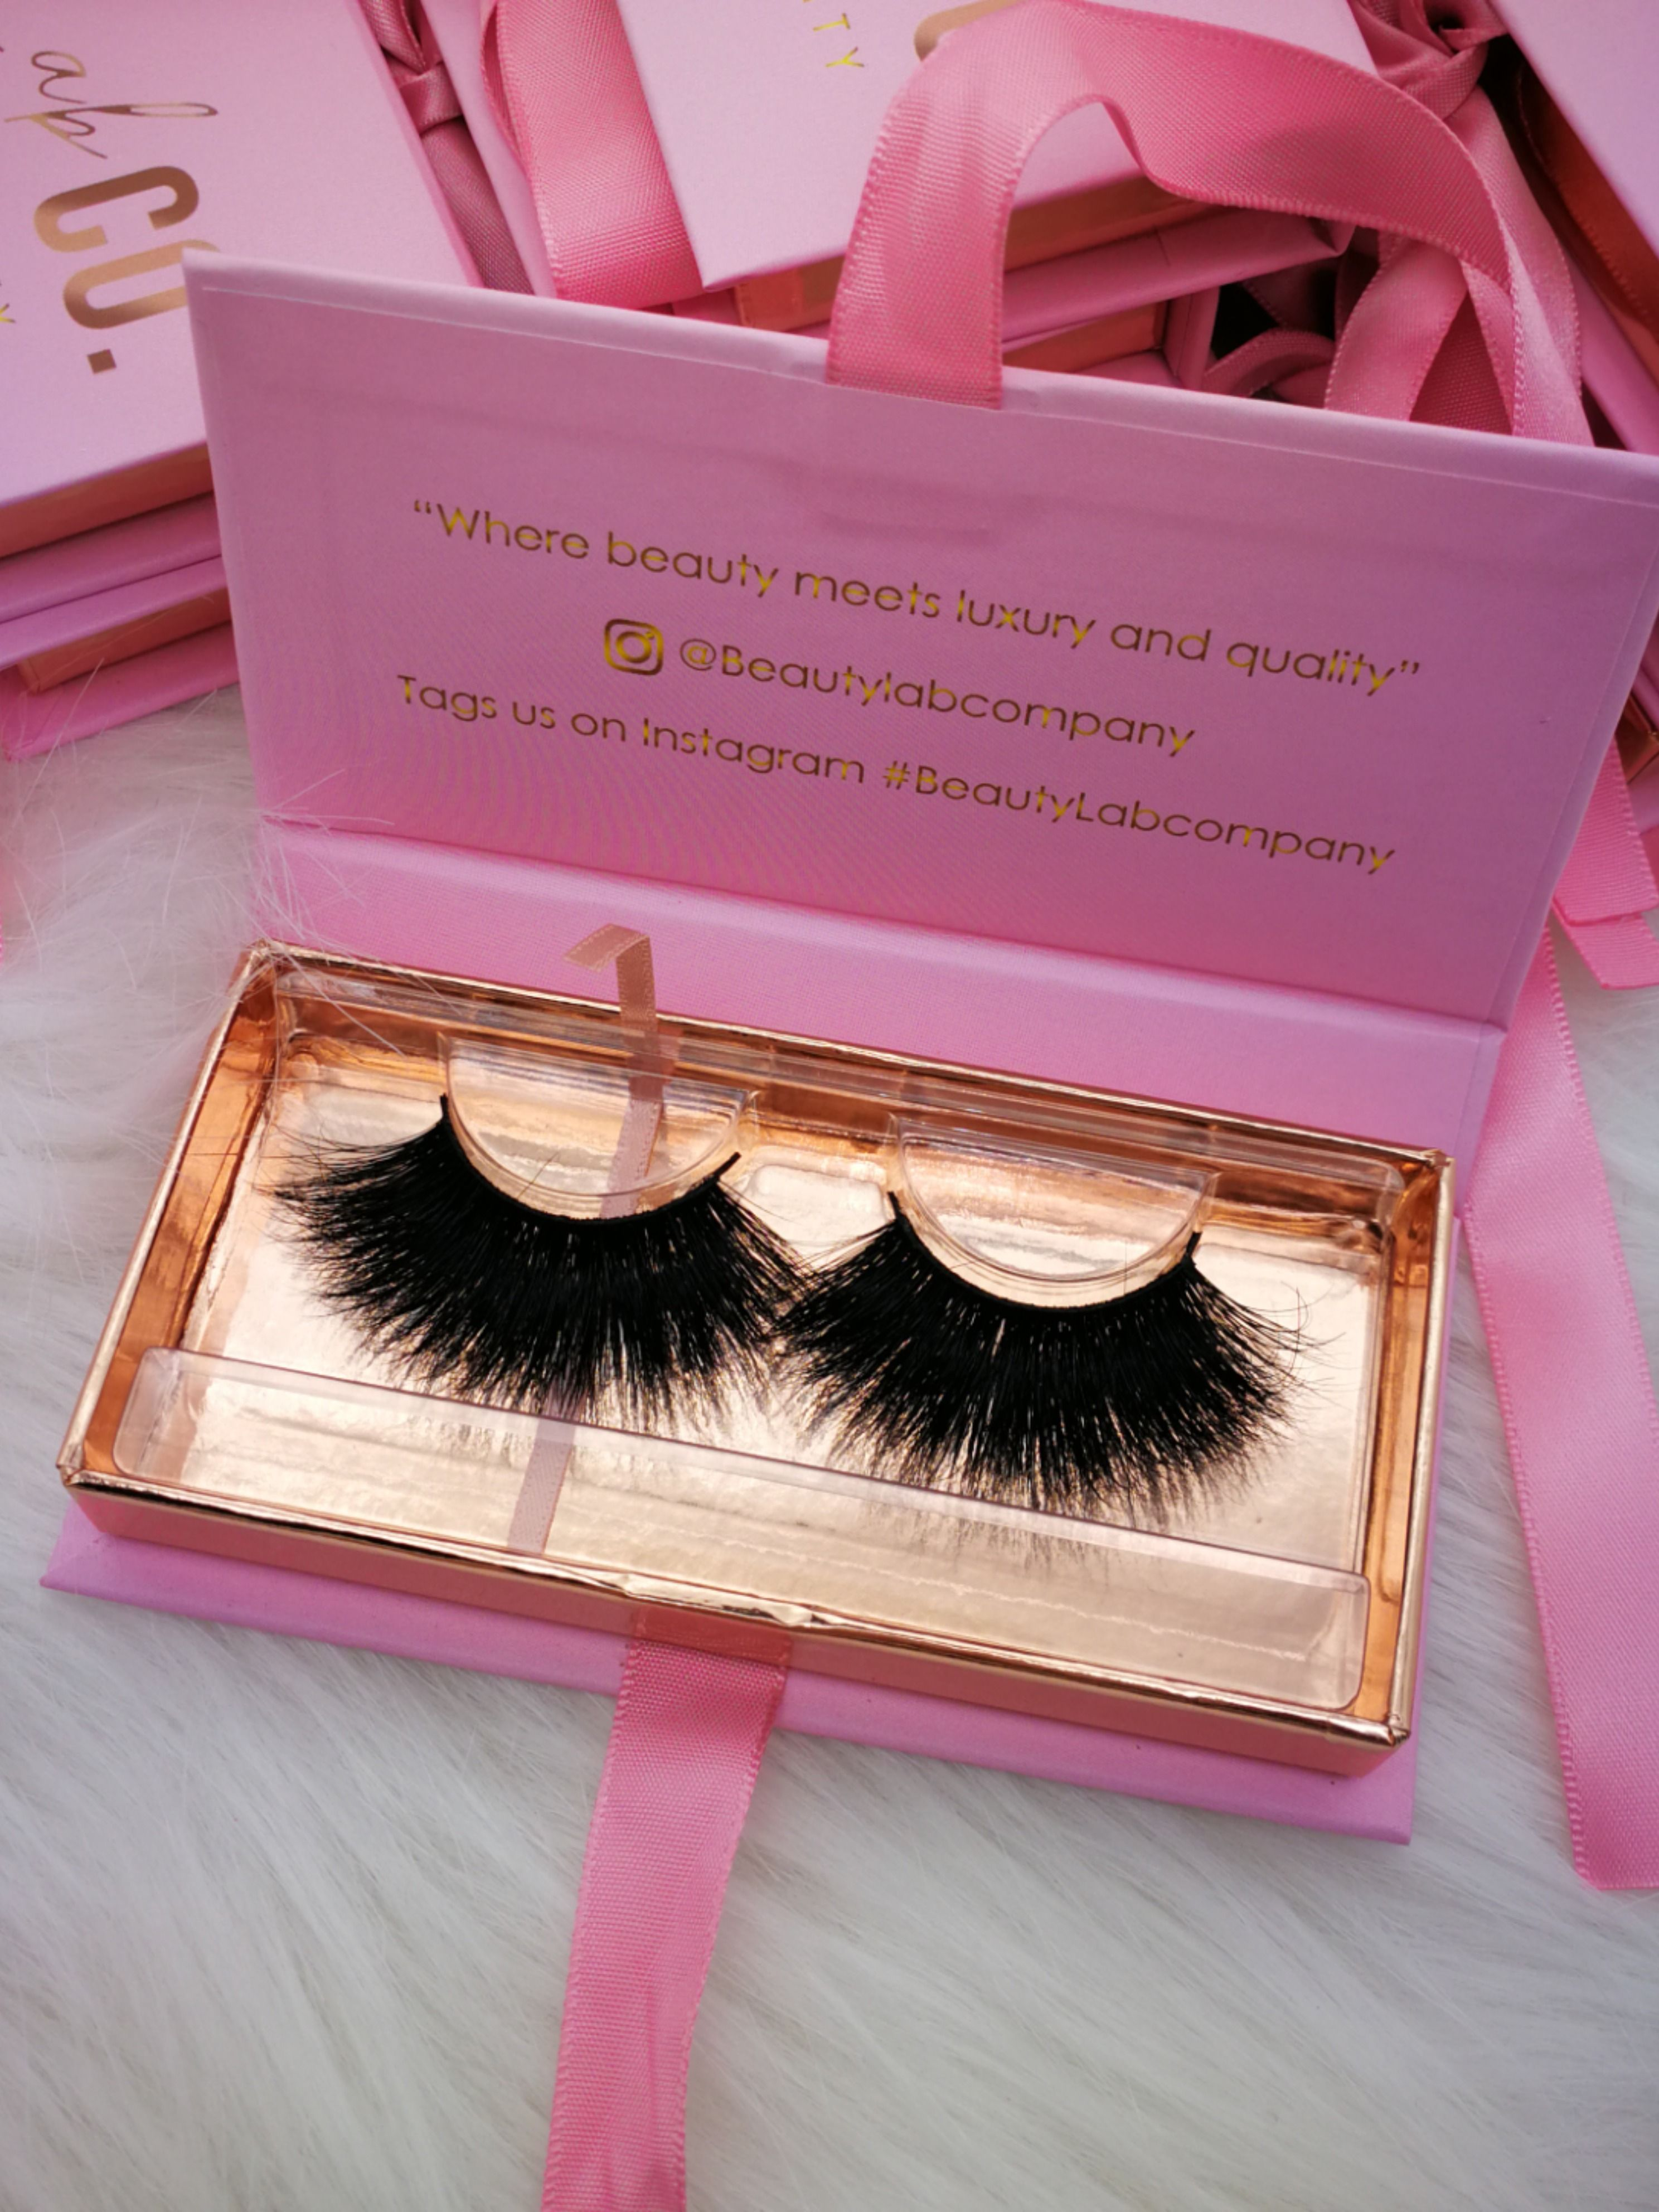 How To Start Your Own Lash Business Custom Eyelash Packaging Box With Private Label Logo Dramatic Lash Eye Makeup Remover All About Eyes